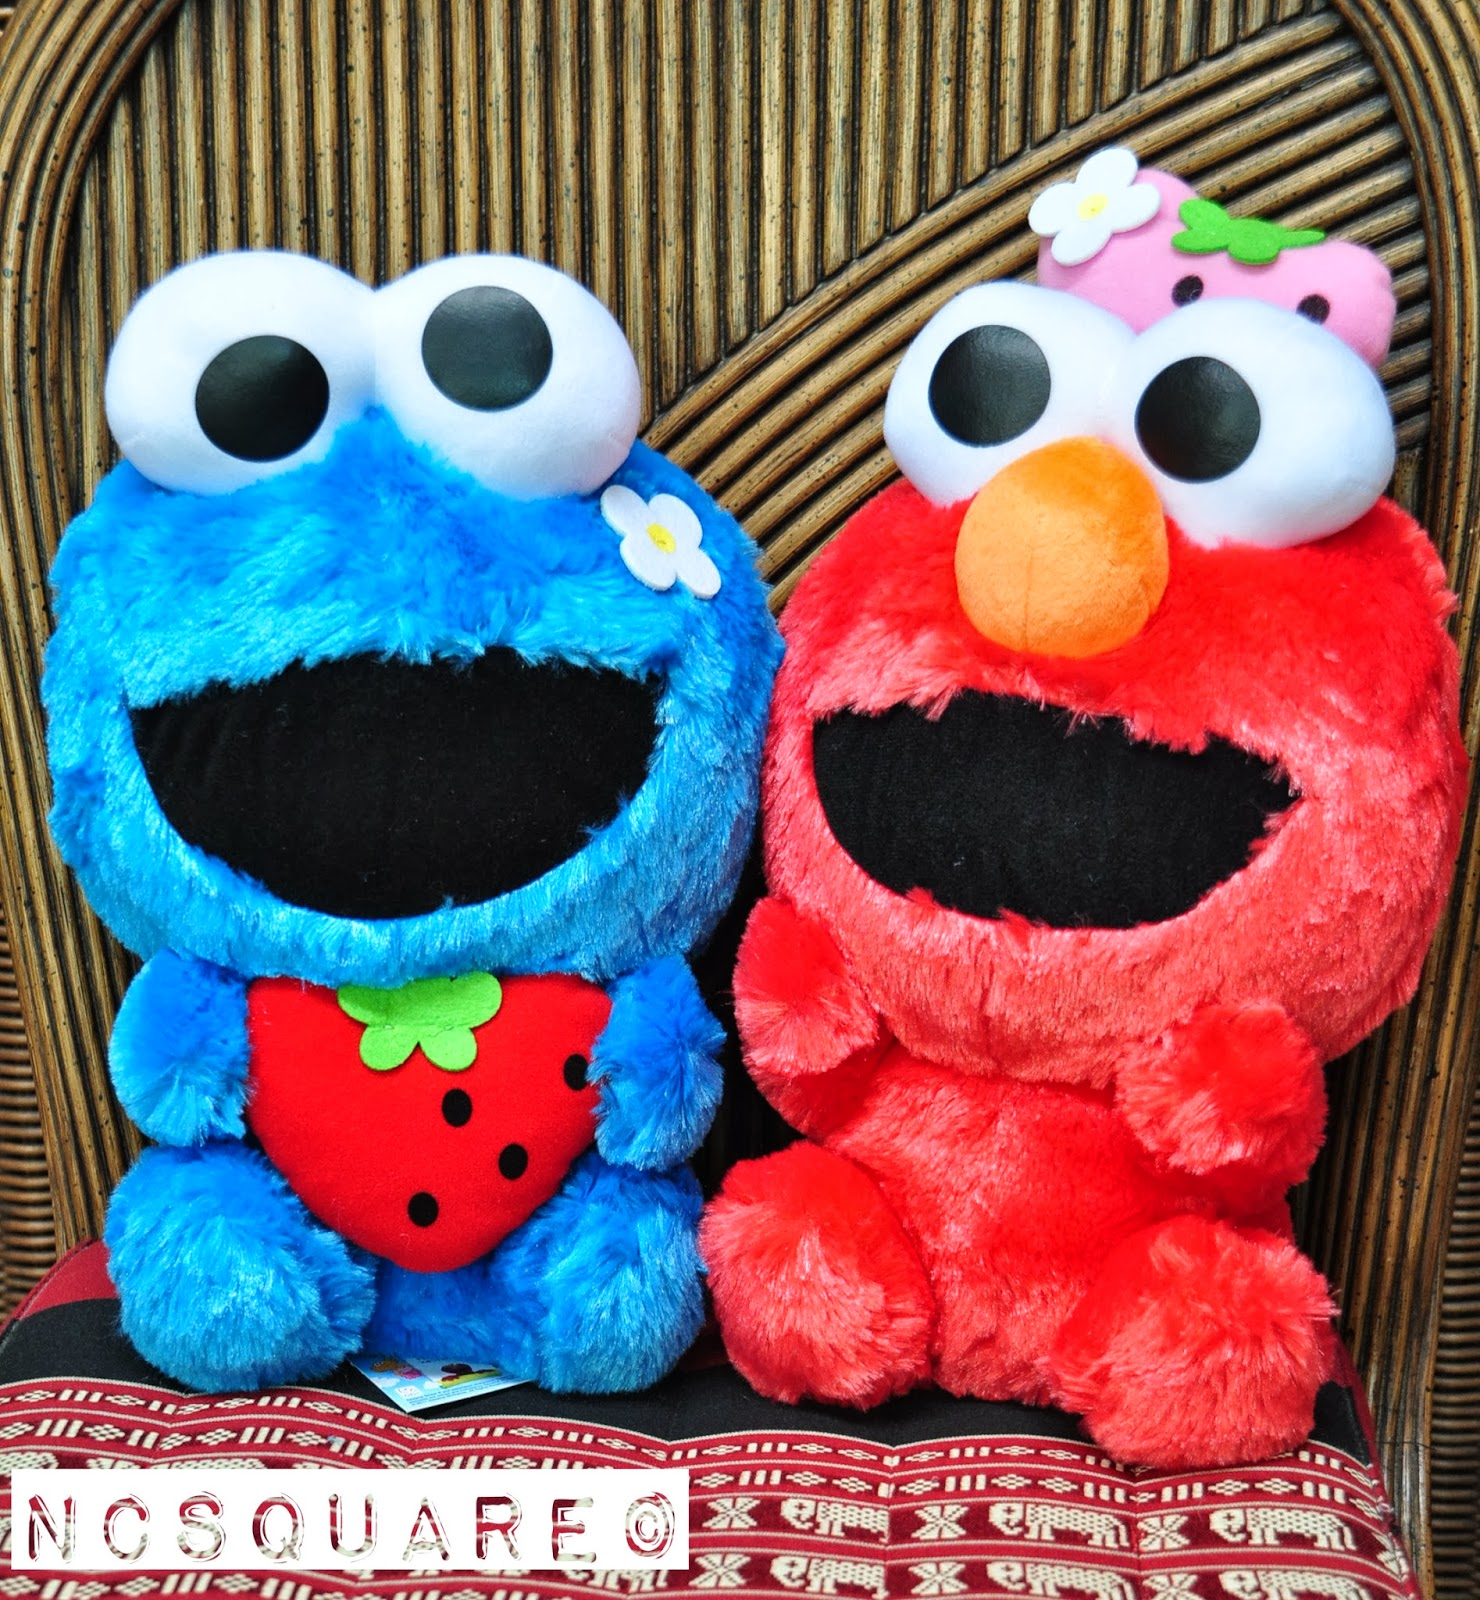 NCSQUARE: Elmo & Cookie Monster